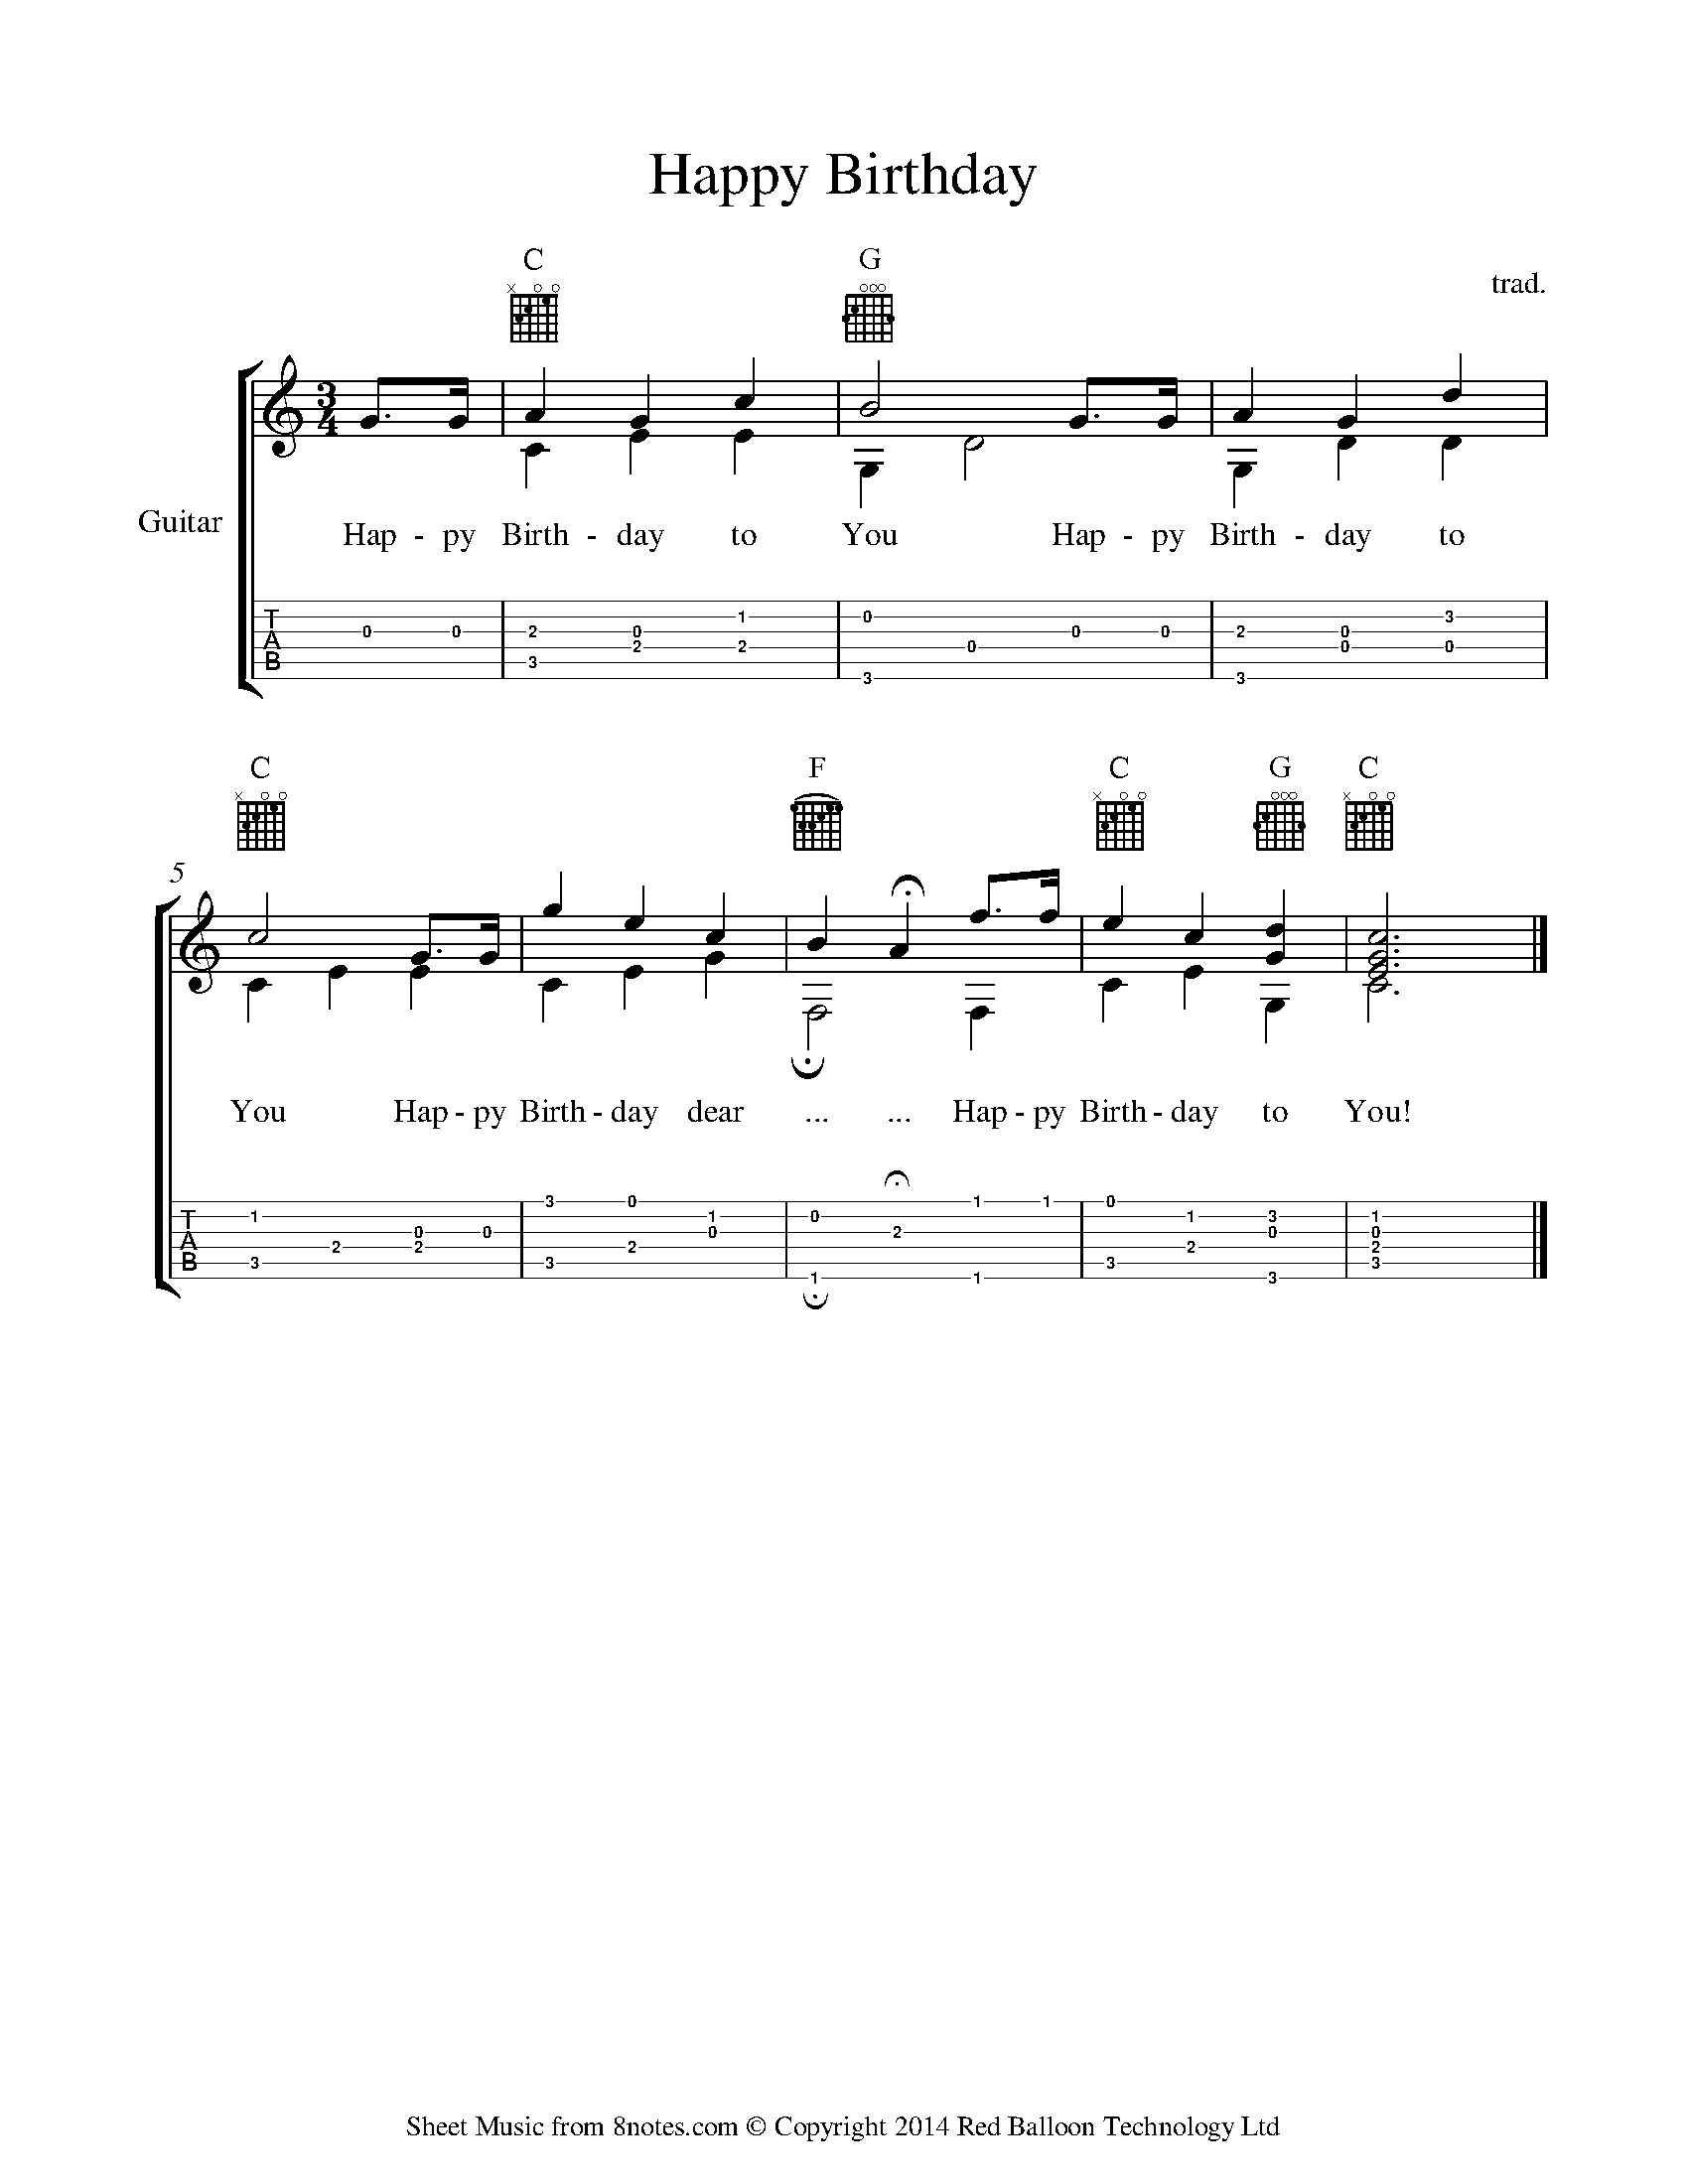 Happy Birthday To You Sheet Music For Guitar 8notes Com